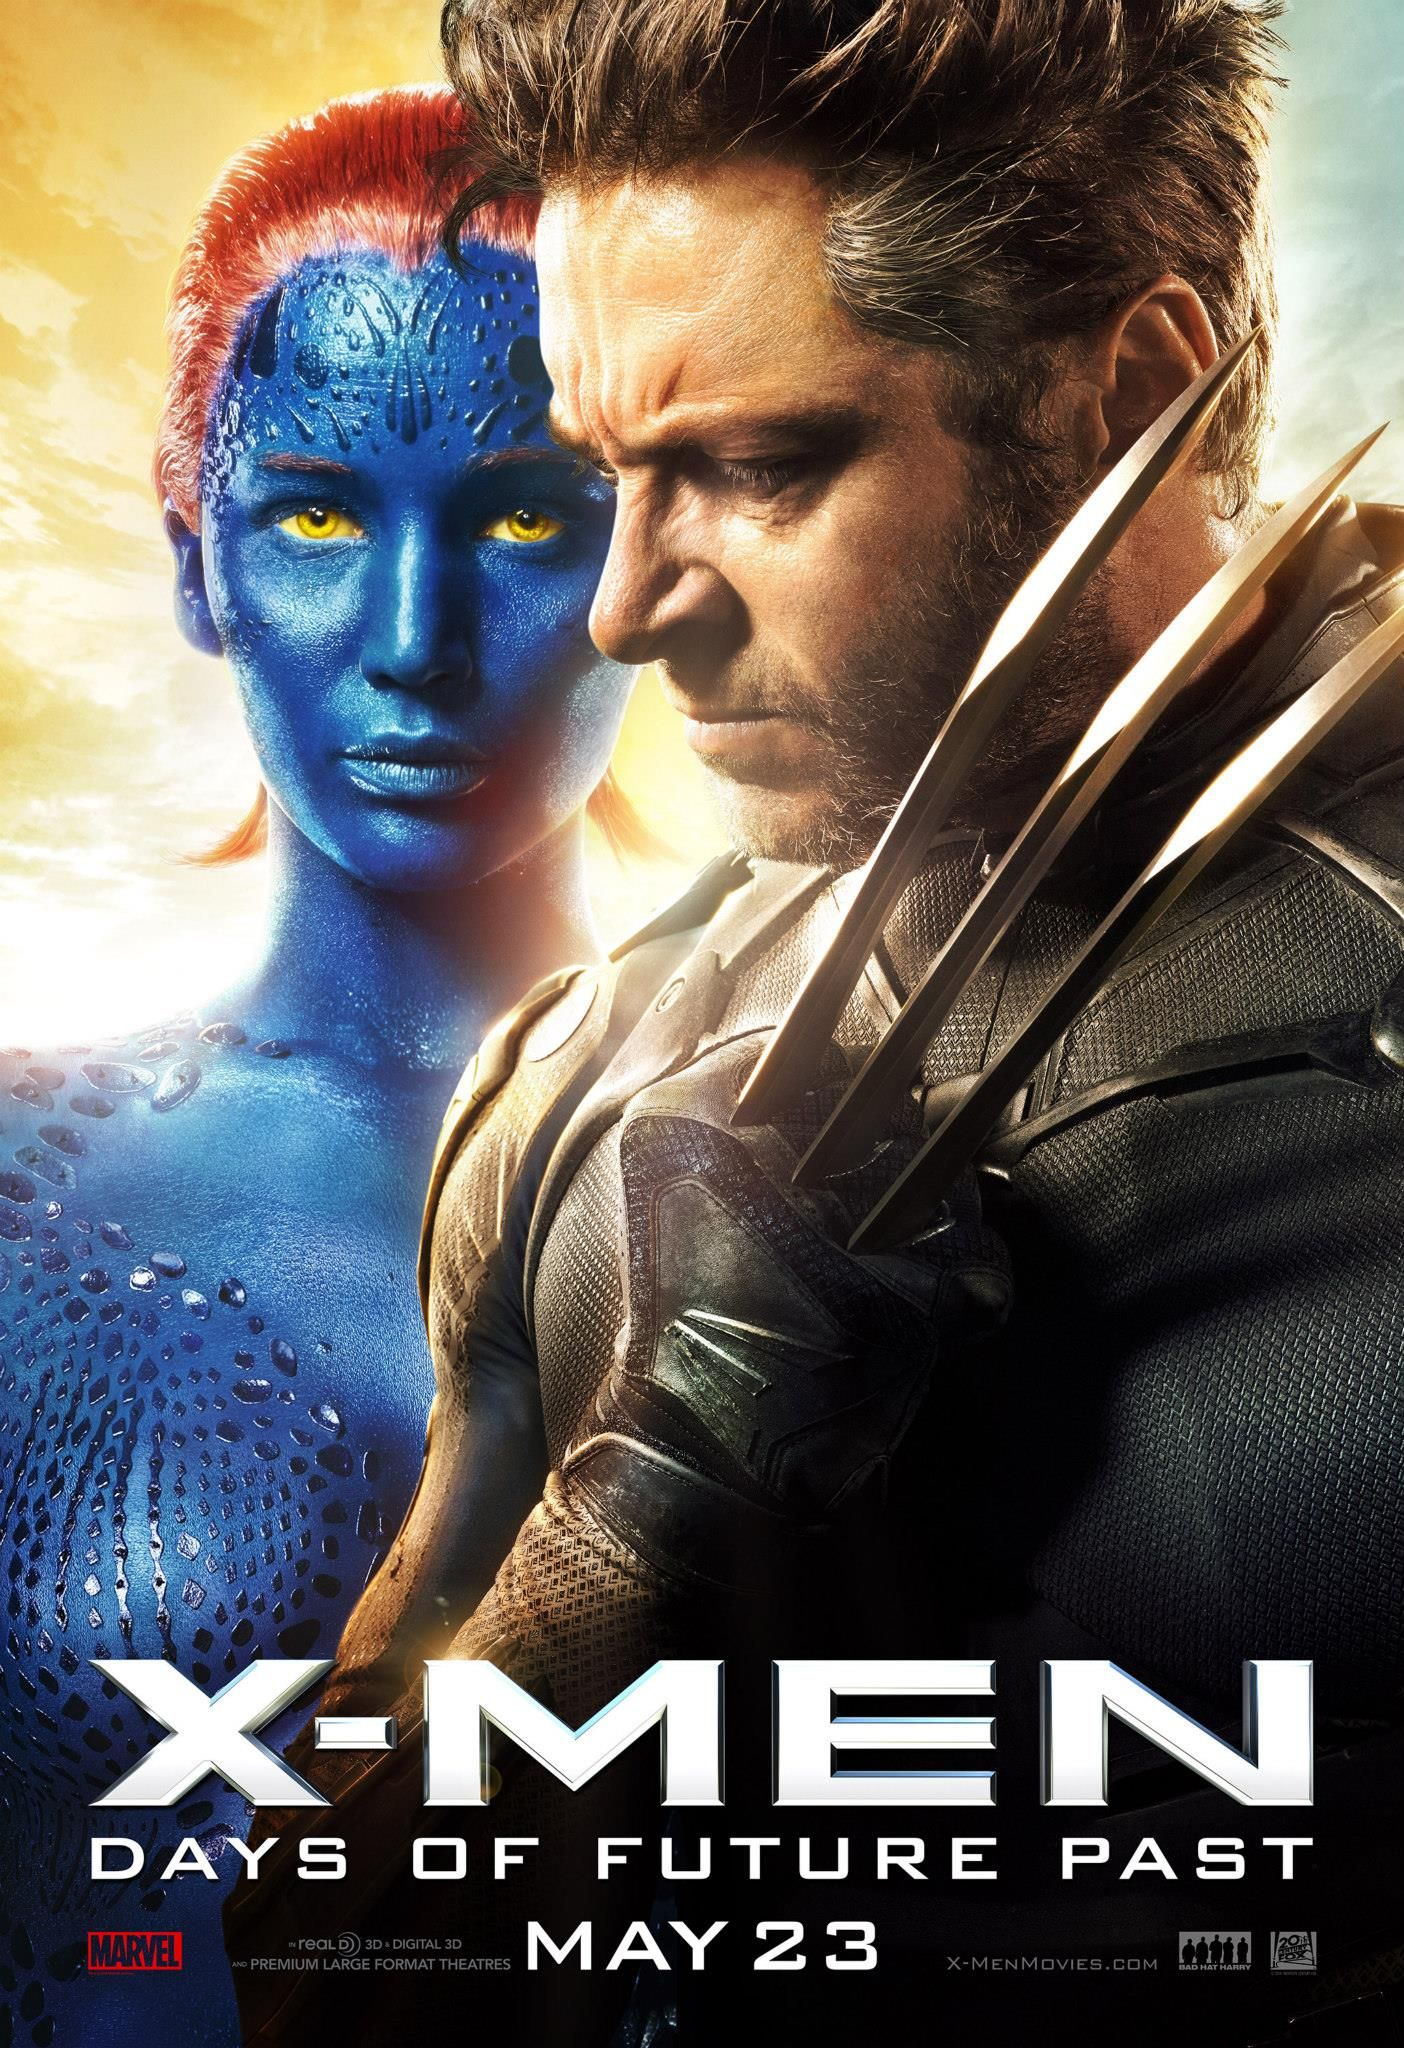 X Men Days Of Future Past Character Posters Officially Released Days Of Future Past X Men Man Movies